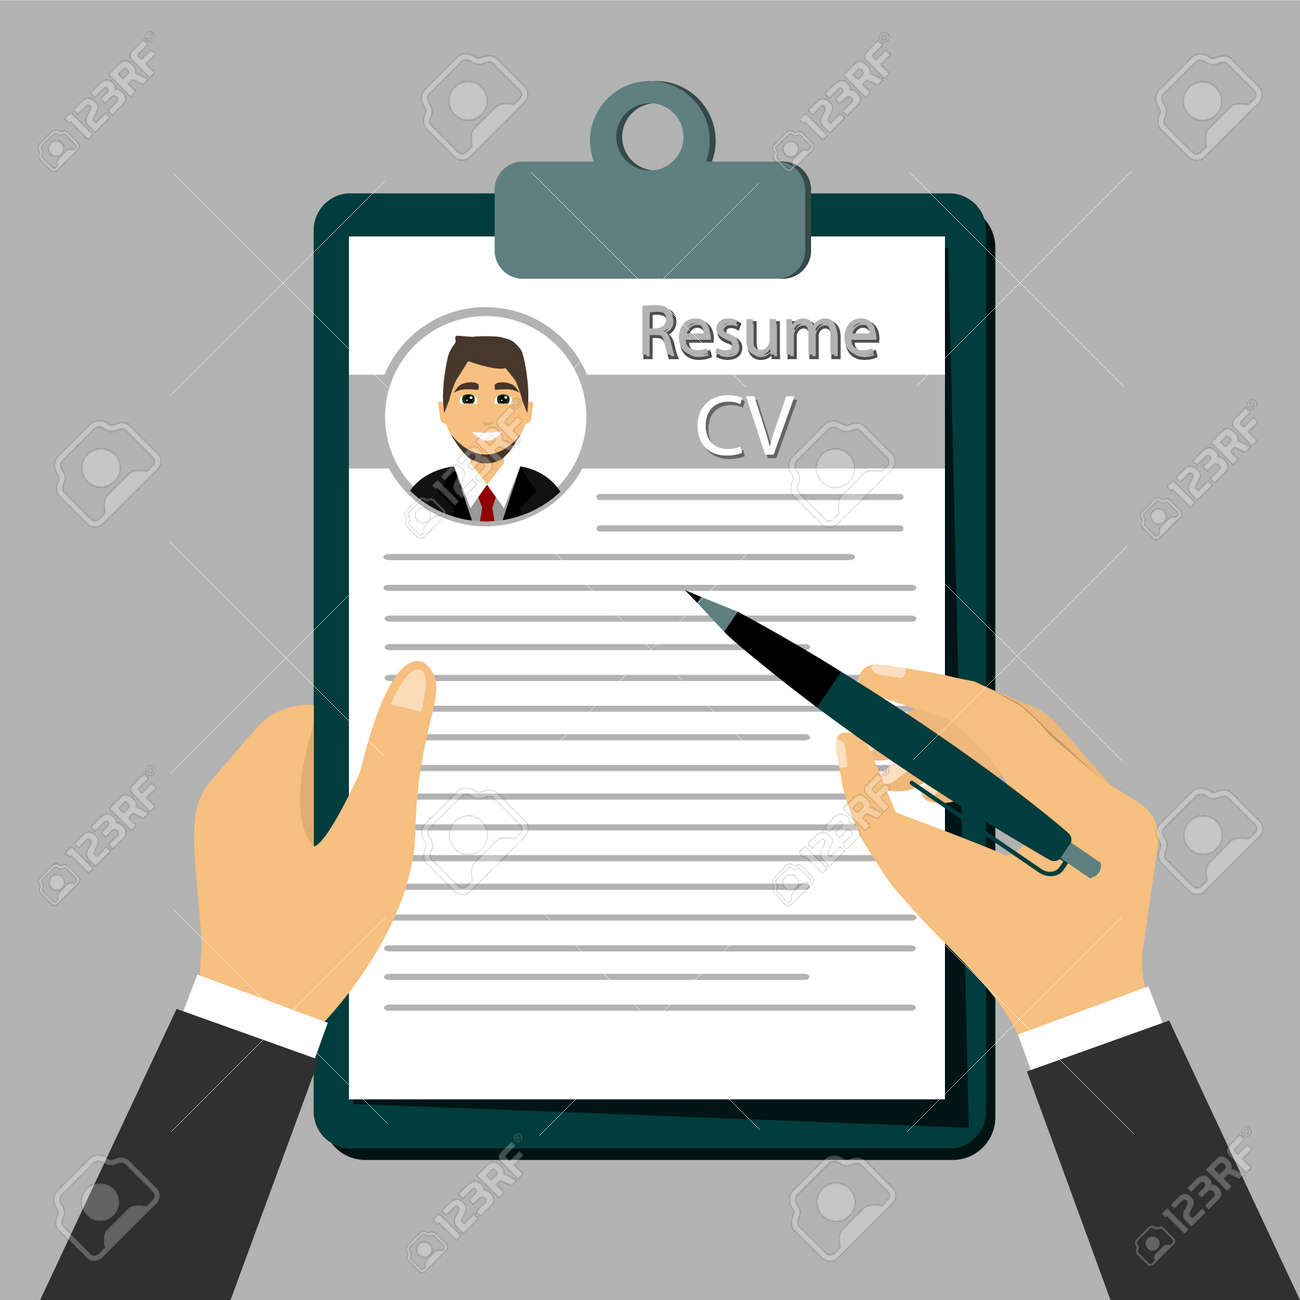 Check Resume, The concept of resume in the hands. - 134182403